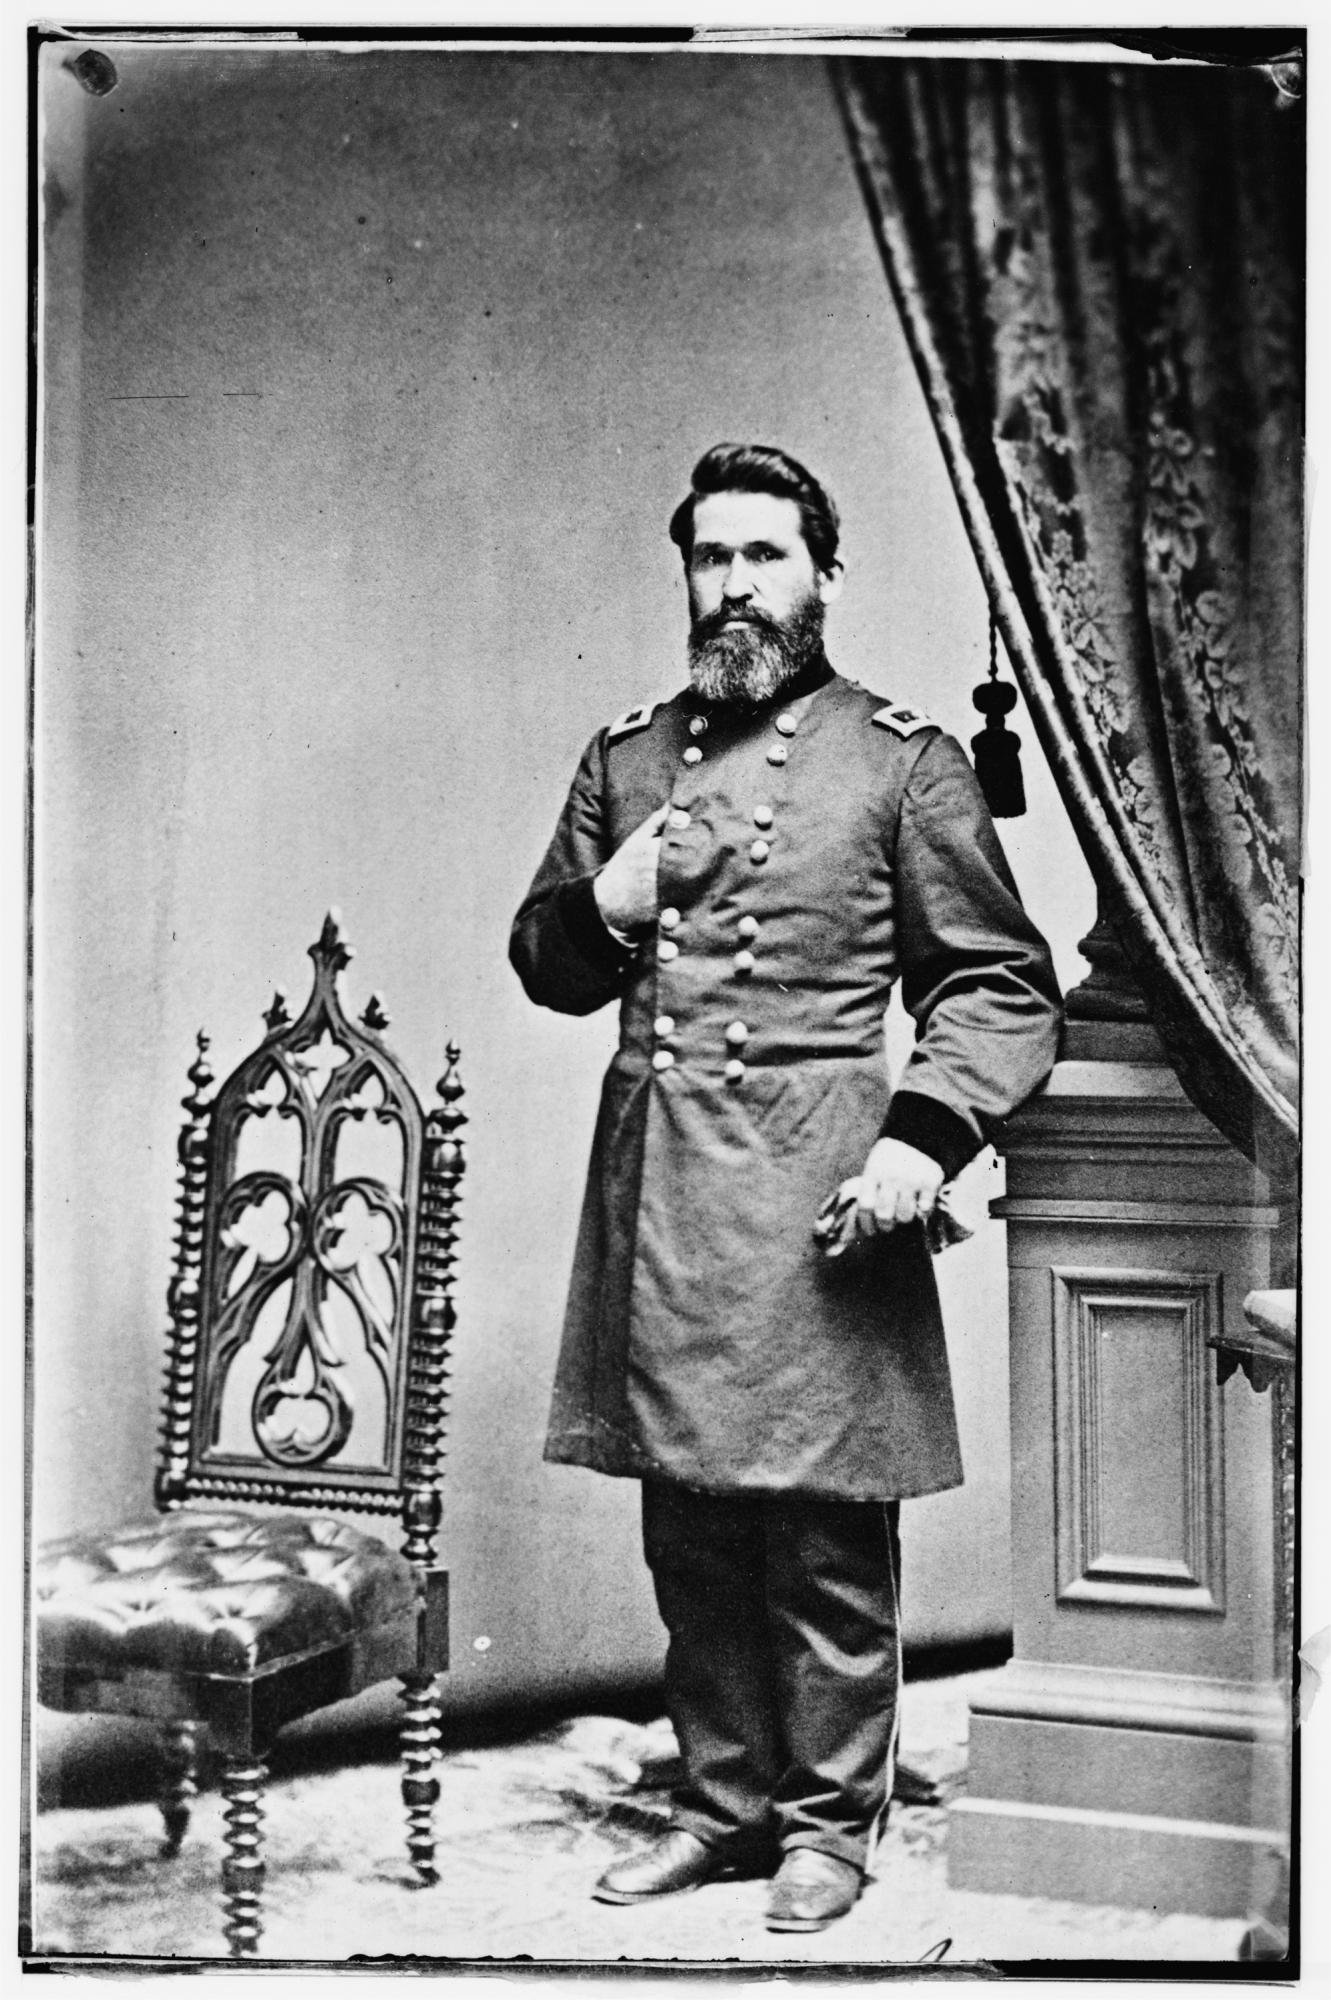 Union General James Blunt came to Moonlight's rescue later during the battle. An ardent abolitionist, he was the only Kansan to achieve the rank of Major General during the war.